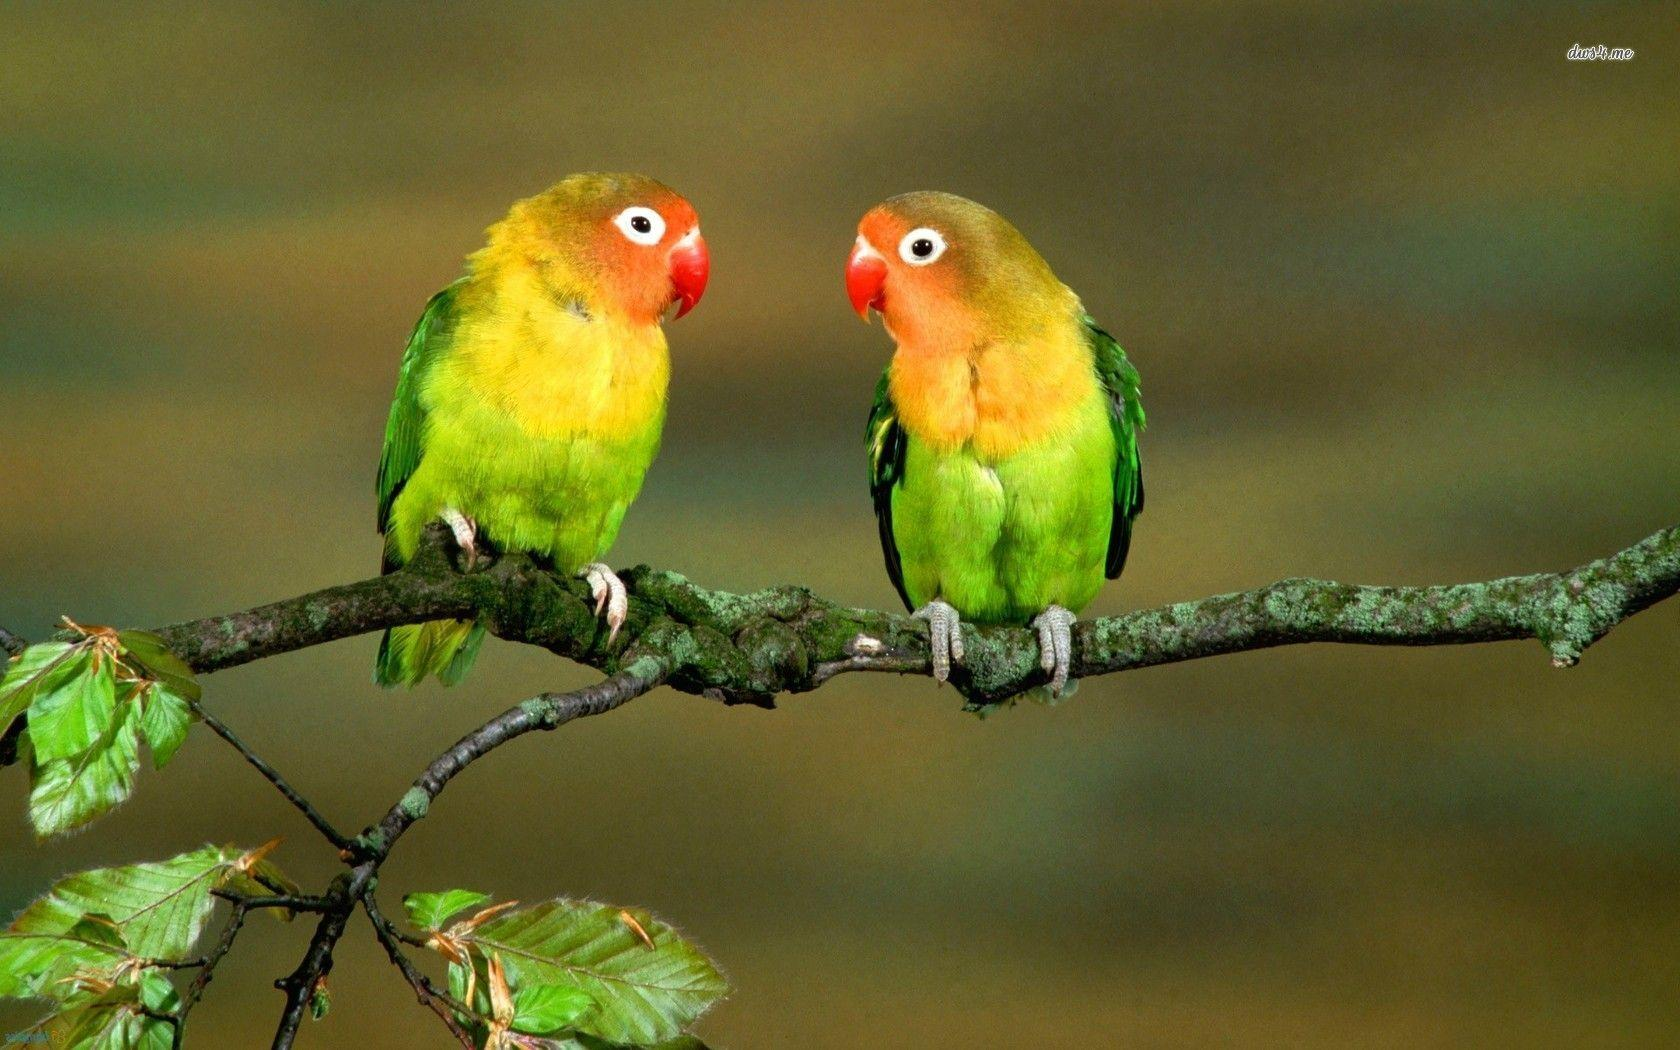 Love Birds Wallpaper Free Download For Pc: LOVE BIRDS HD WALLPAPERS